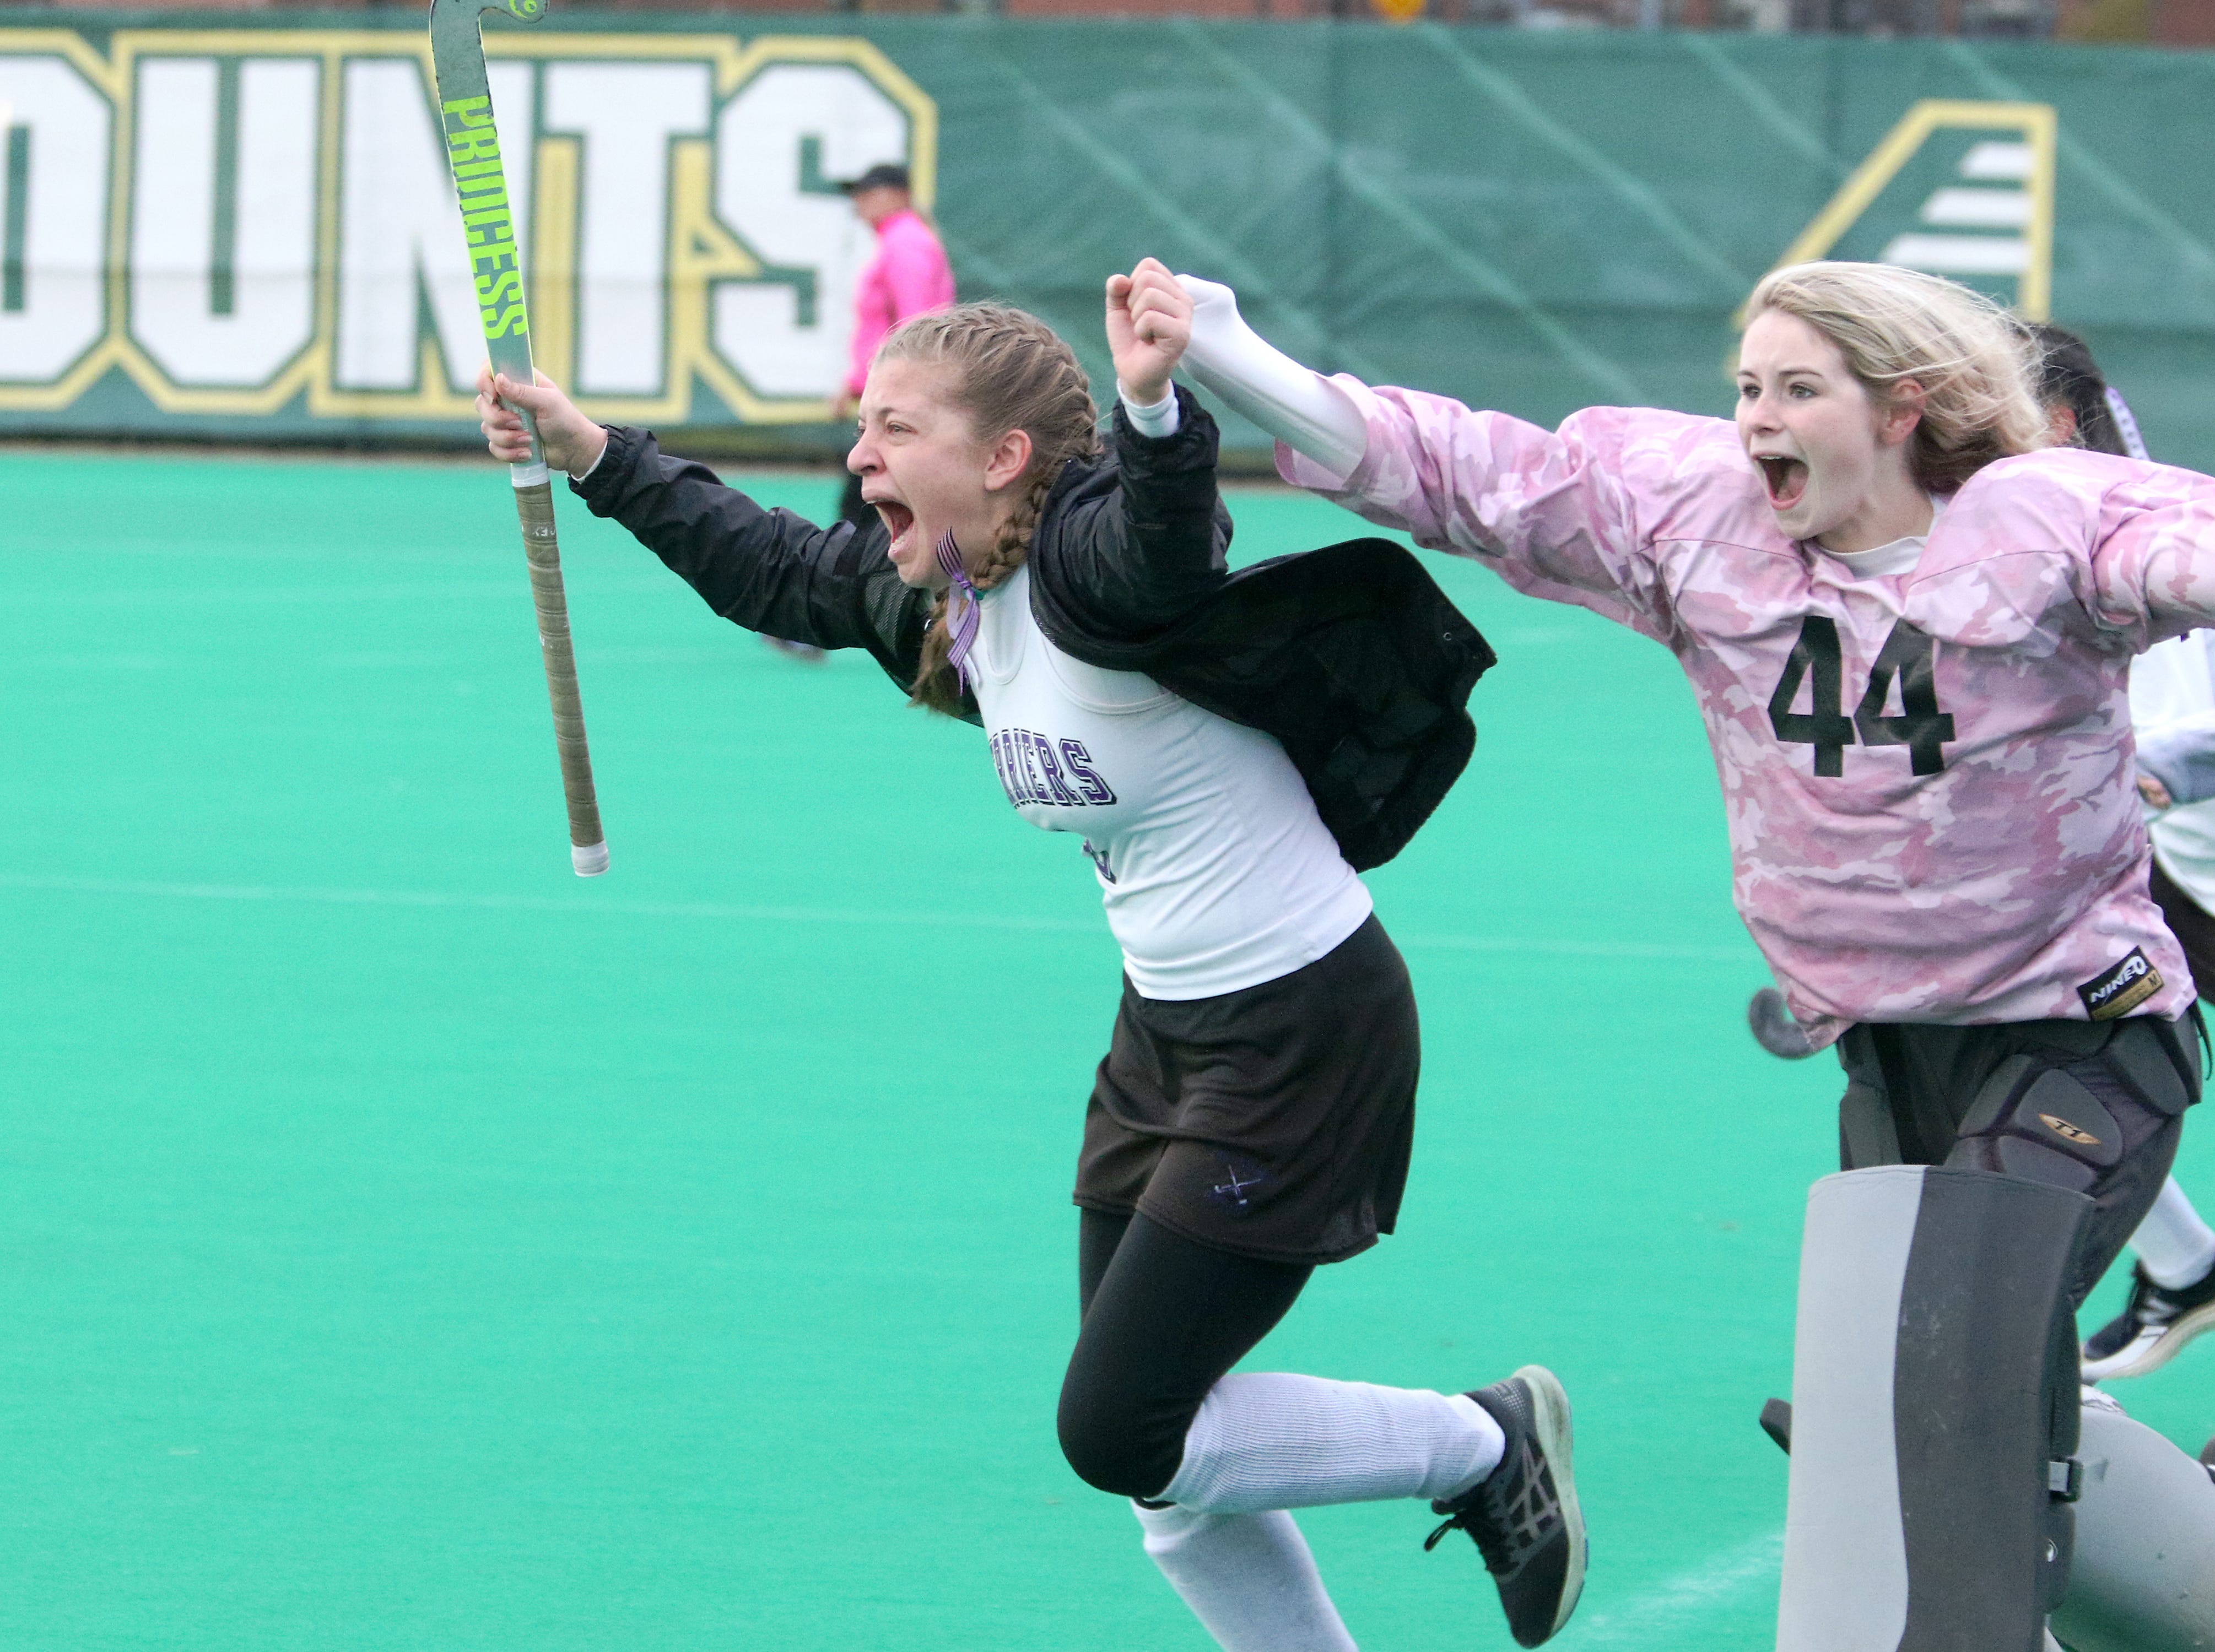 The thrill of victory! Junior Meagan Kelly and Senior Brigid Hodsden storm the field after defeating South Burlington 2-0 to claim the 2018 D1 State Championship.